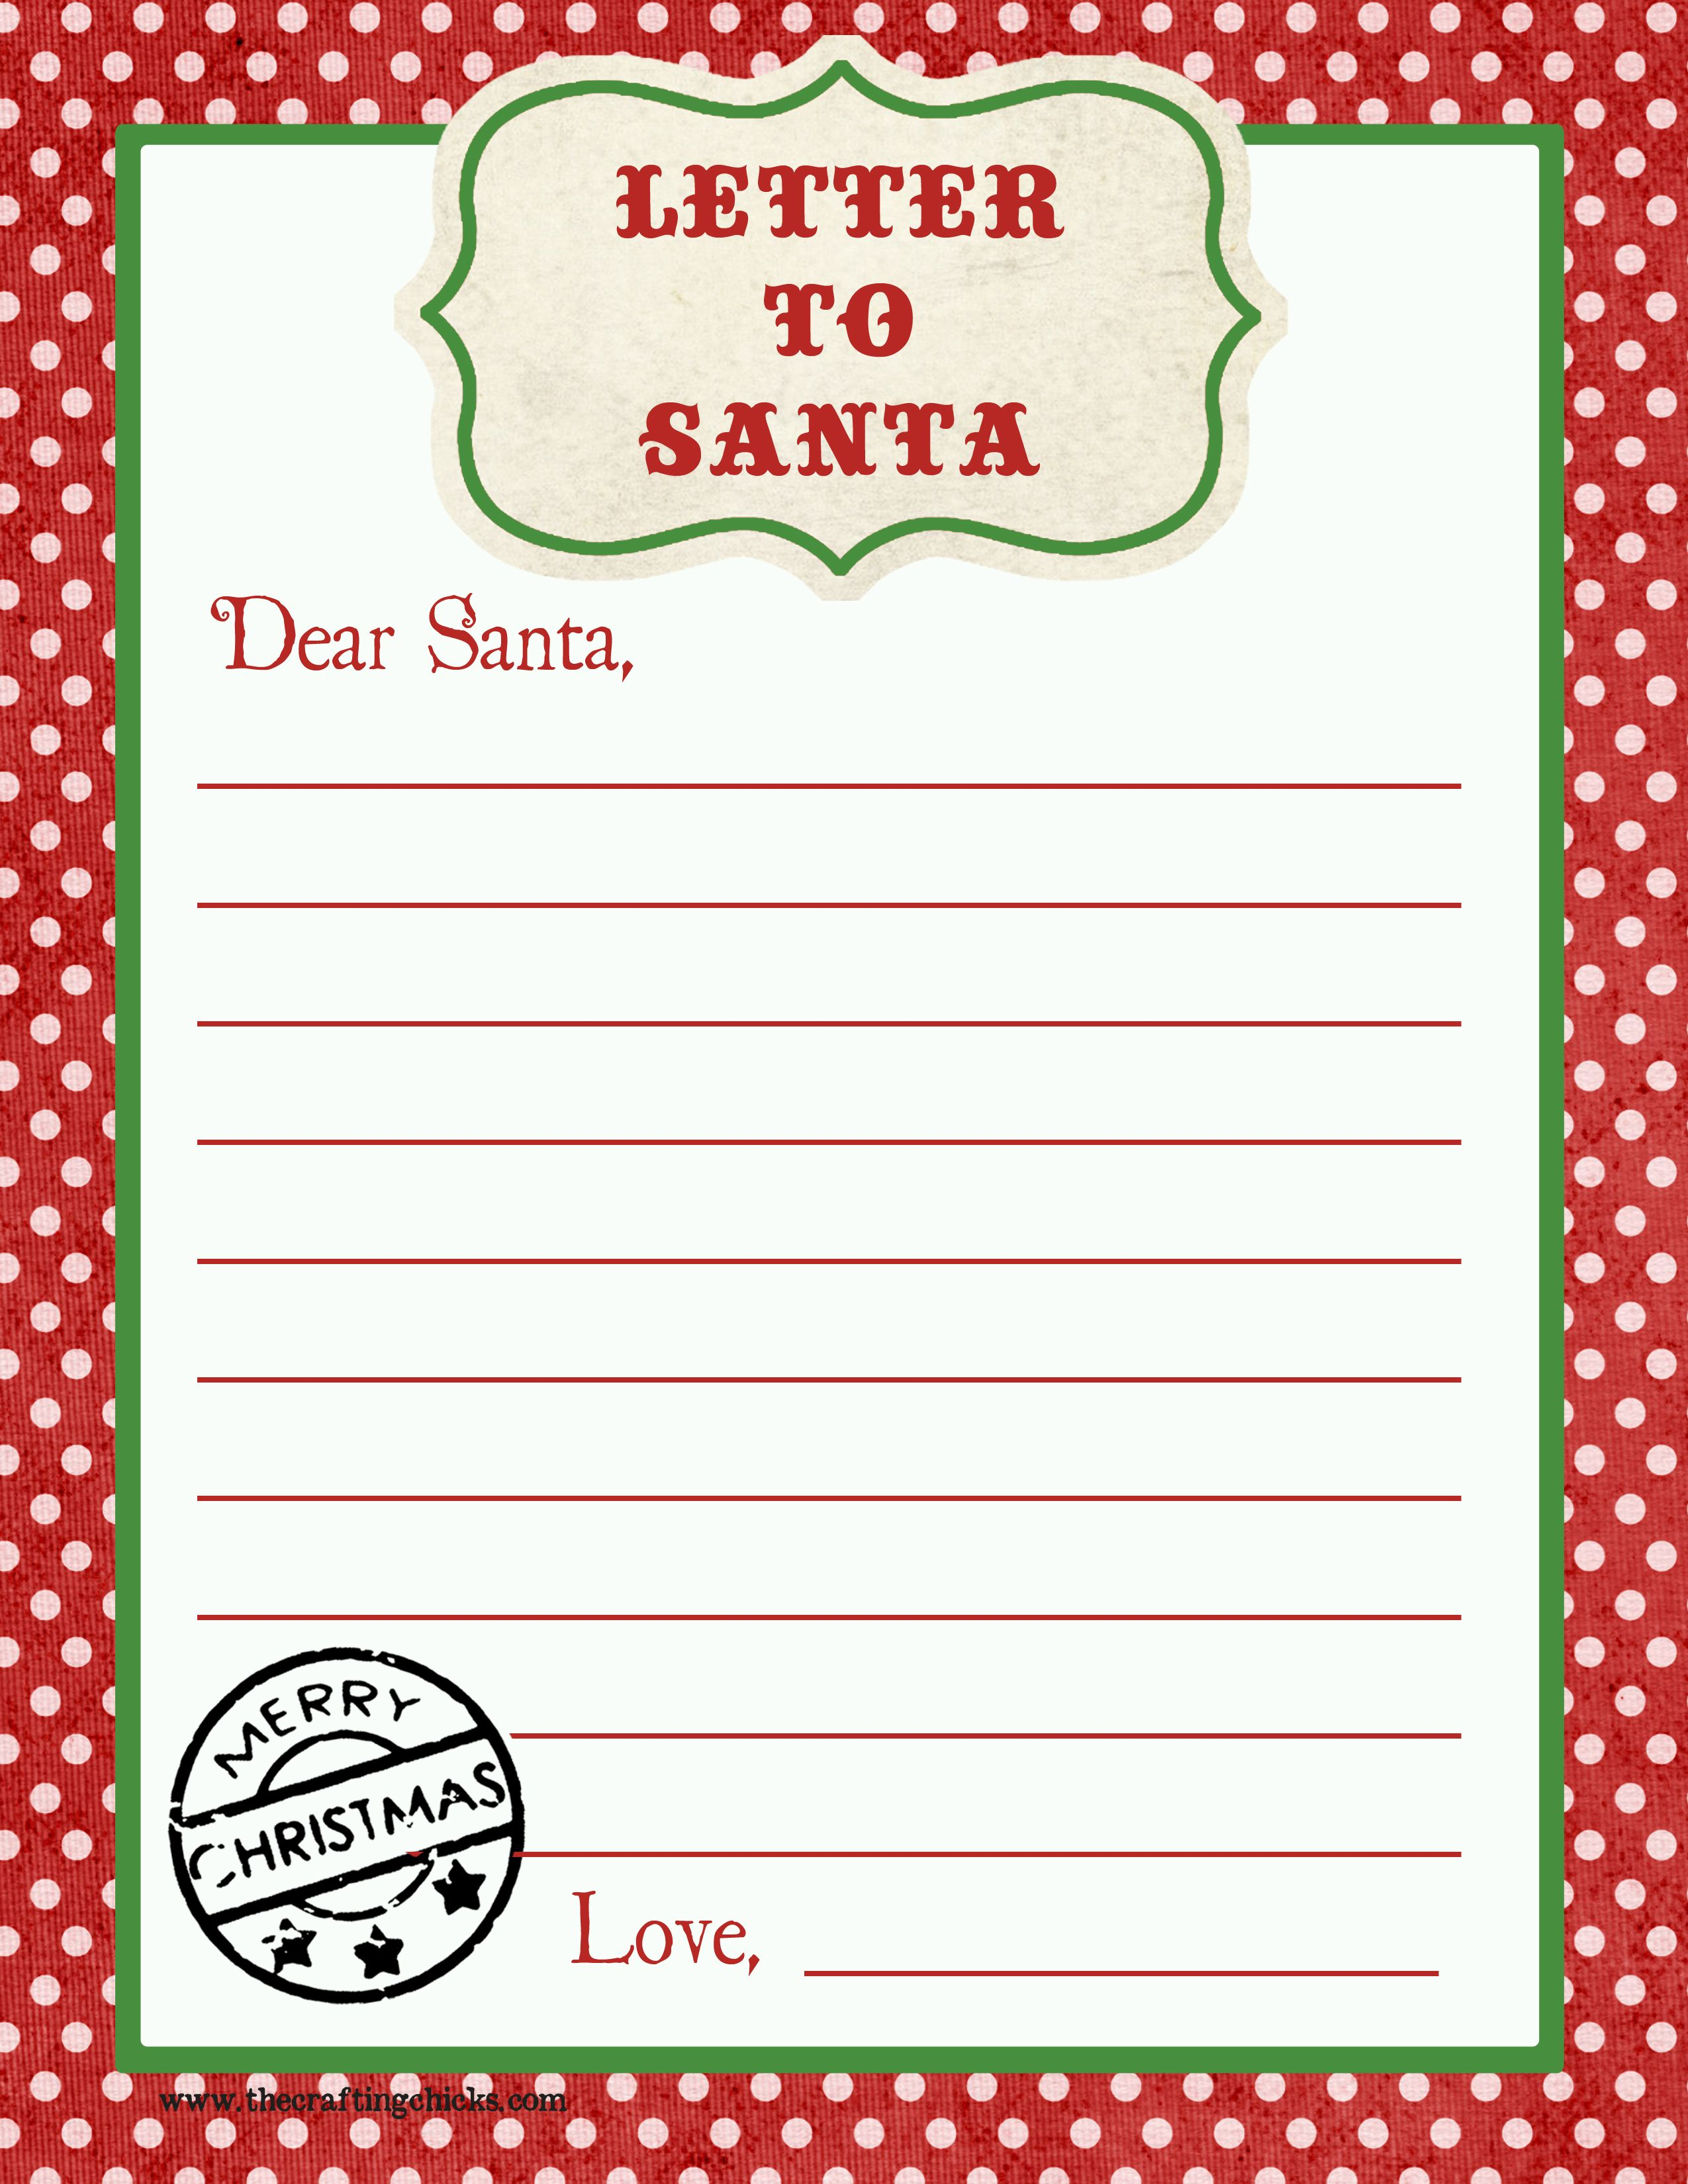 Letter to Santa Template Free Printable - Letter to Santa Free Printable Download